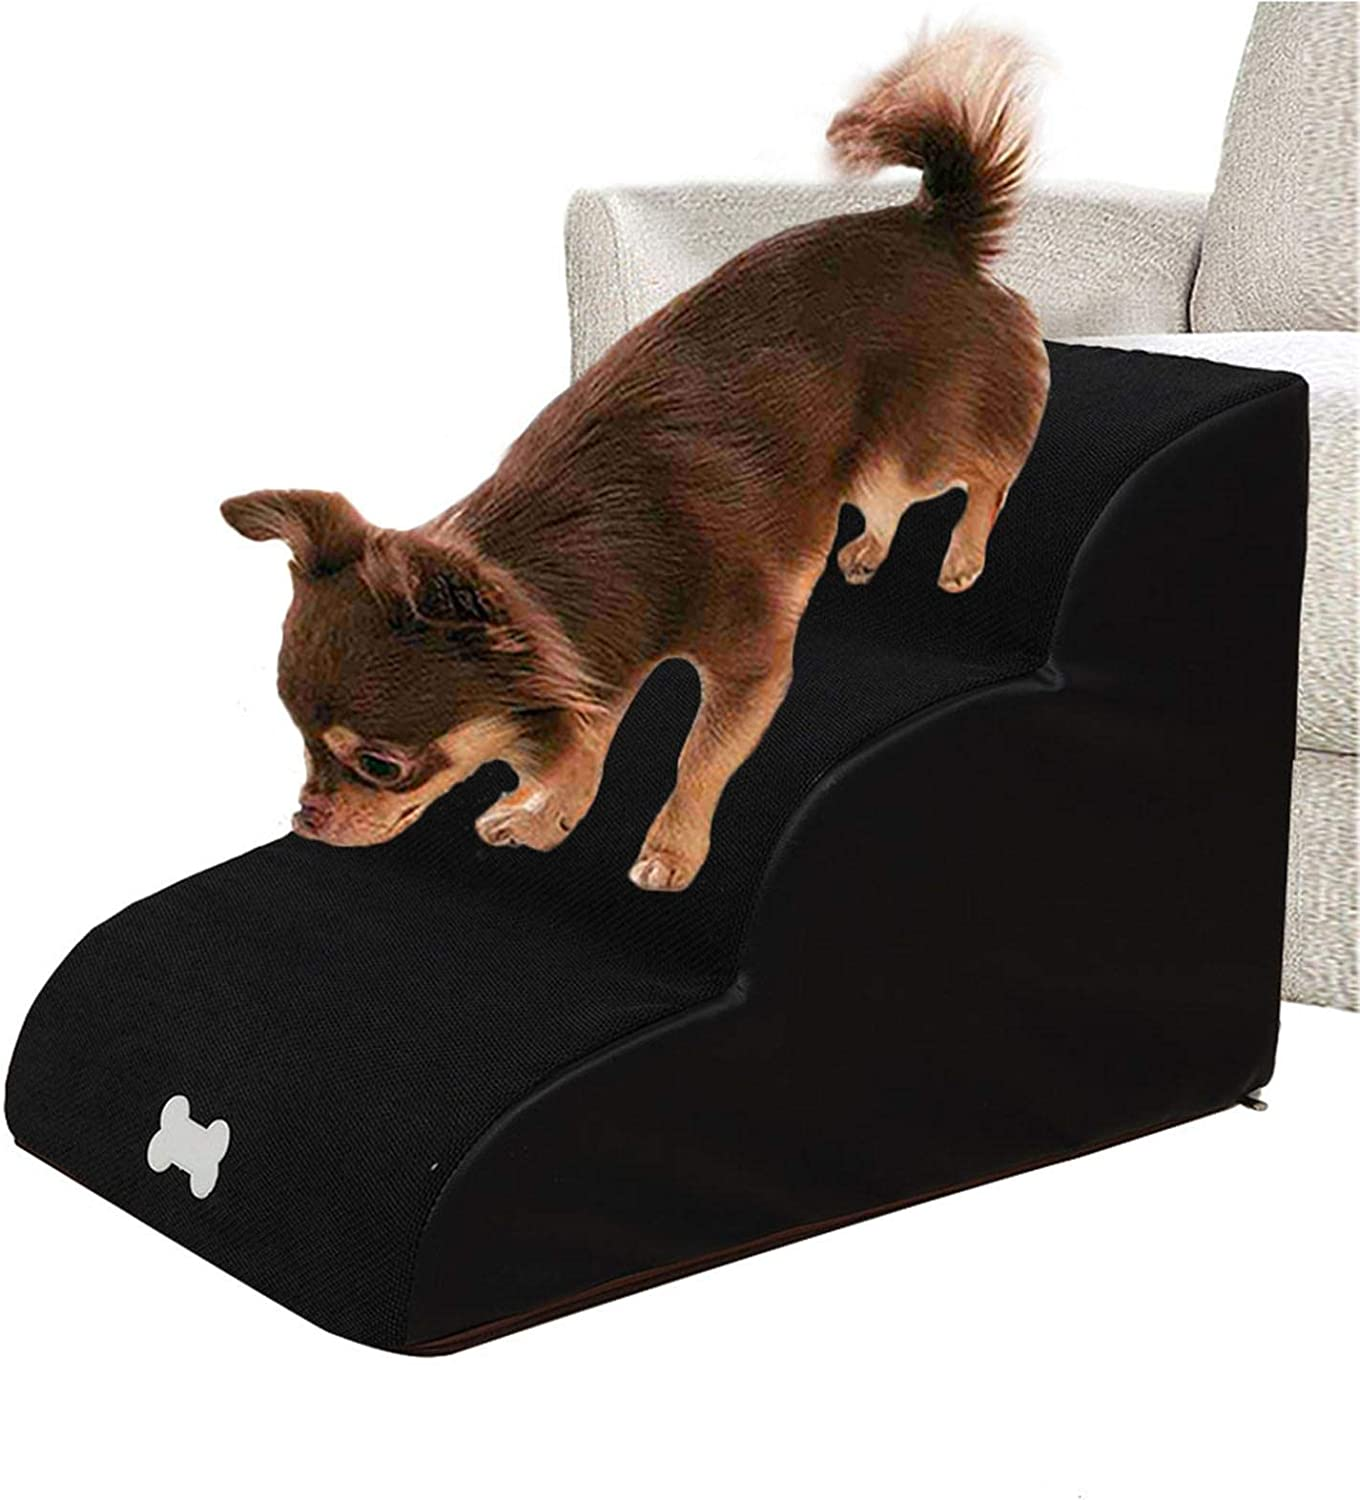 Pet Step Sofa Bed Animal Climb Stairs Assistance 3 Layers Dog Stairs Ladder Pet Stairs Step Dog Ramp Sofa Bed Ladder For Dogs Cats,Non-Slip Ramp Climbing Stair